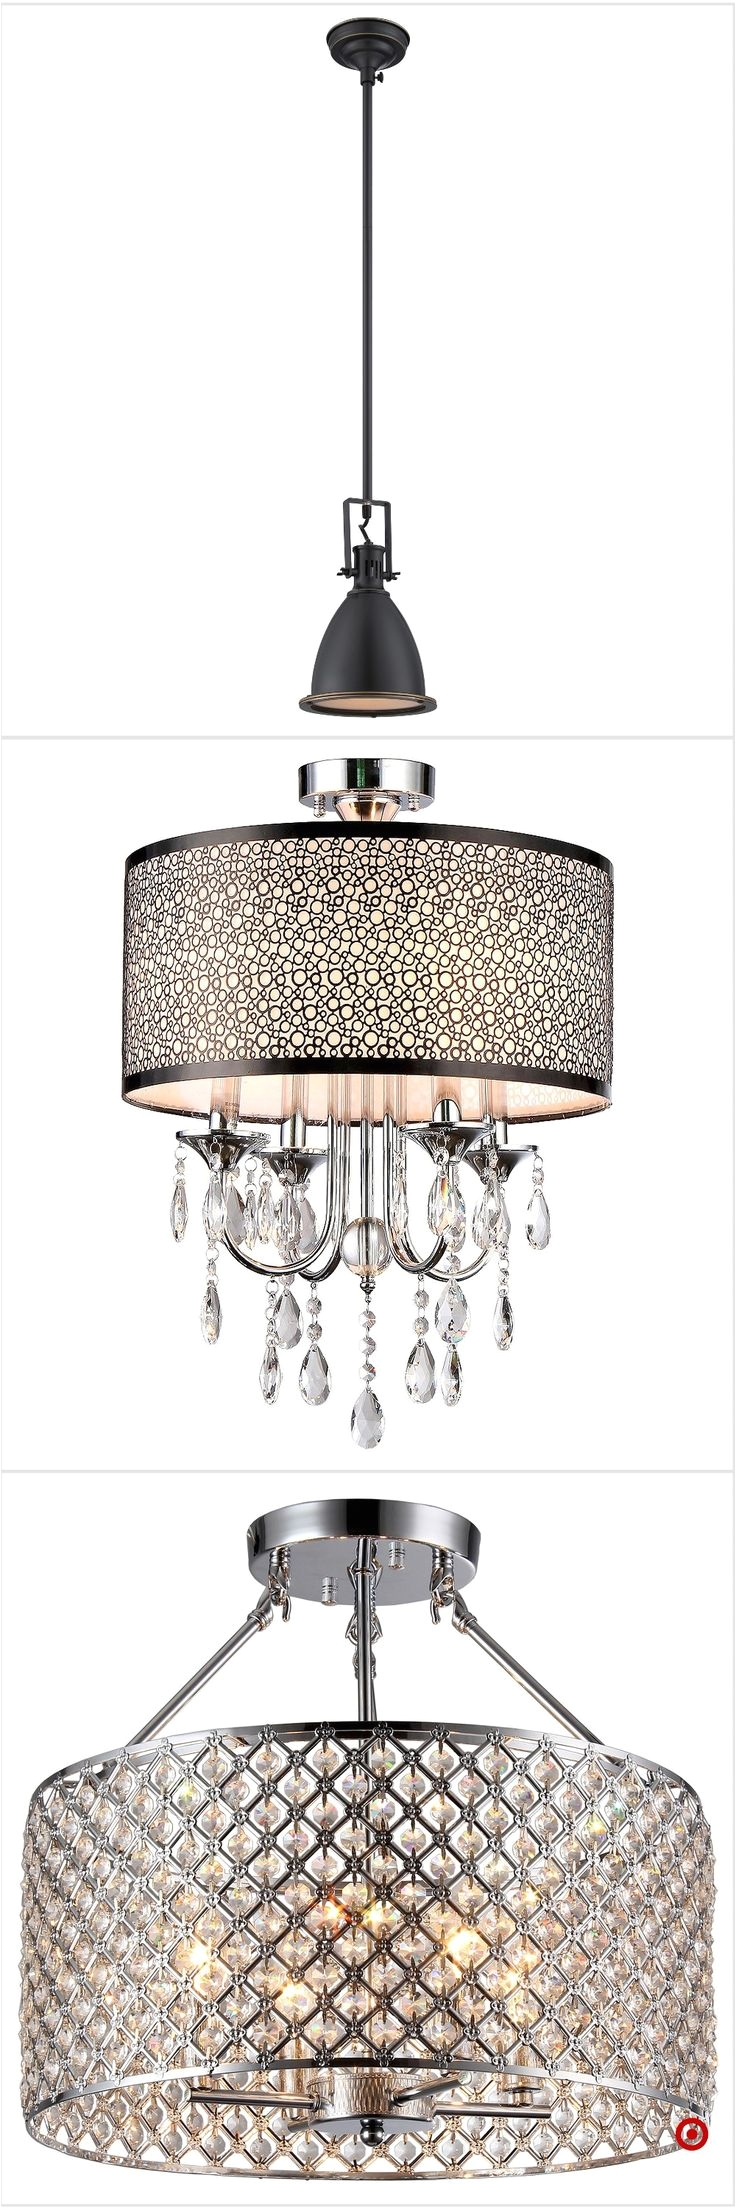 shop target for ceiling lights you will love at great low prices free shipping on